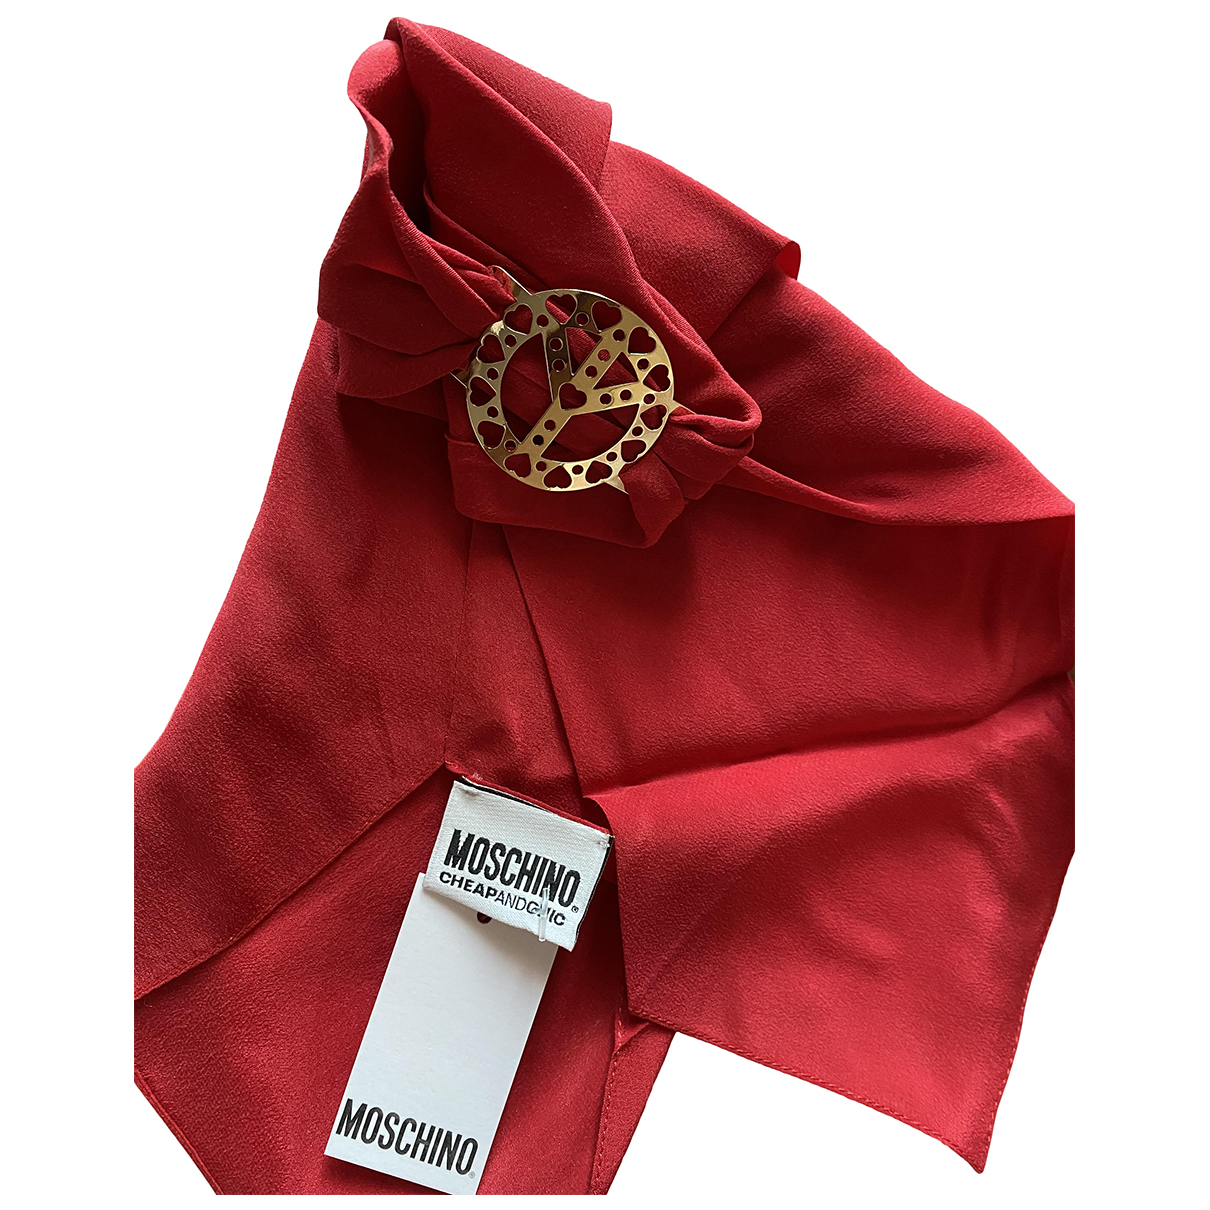 Moschino Cheap And Chic N Red Silk scarf for Women N